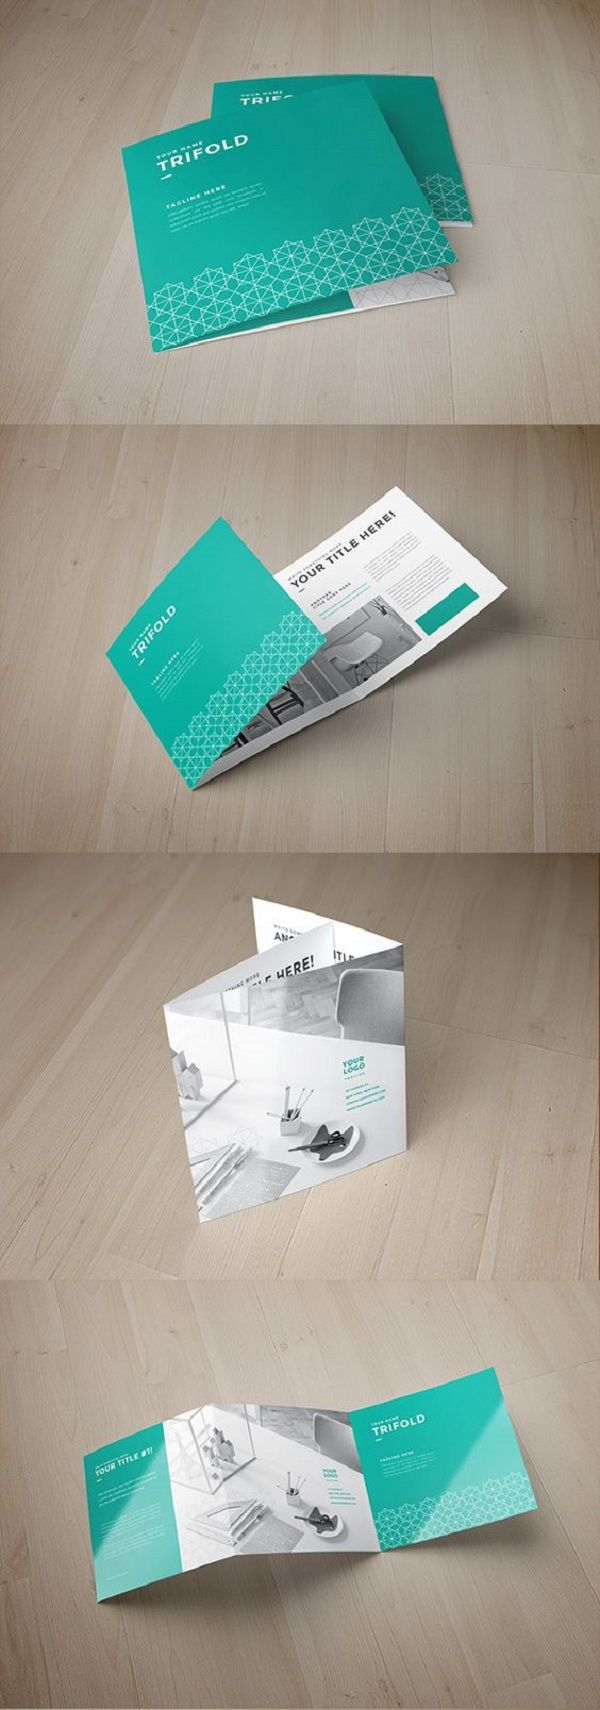 #CreativeBrochure #CorporateBrochure #BrochureDesigns